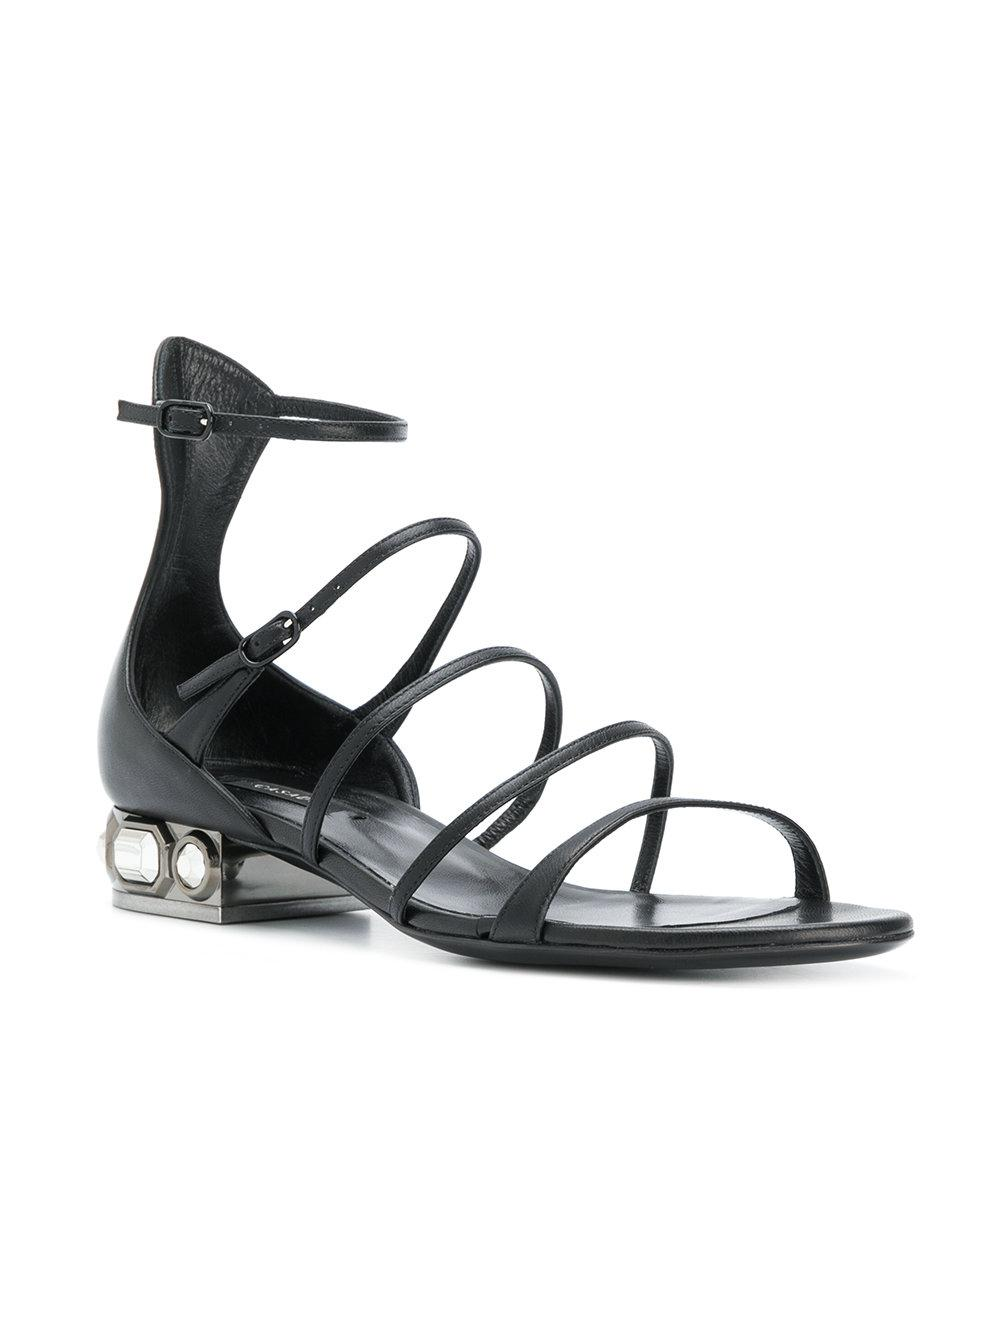 Casadei embellished gladiator sandals 100% guaranteed new arrival online cheap perfect cheap latest collections f6eV1p